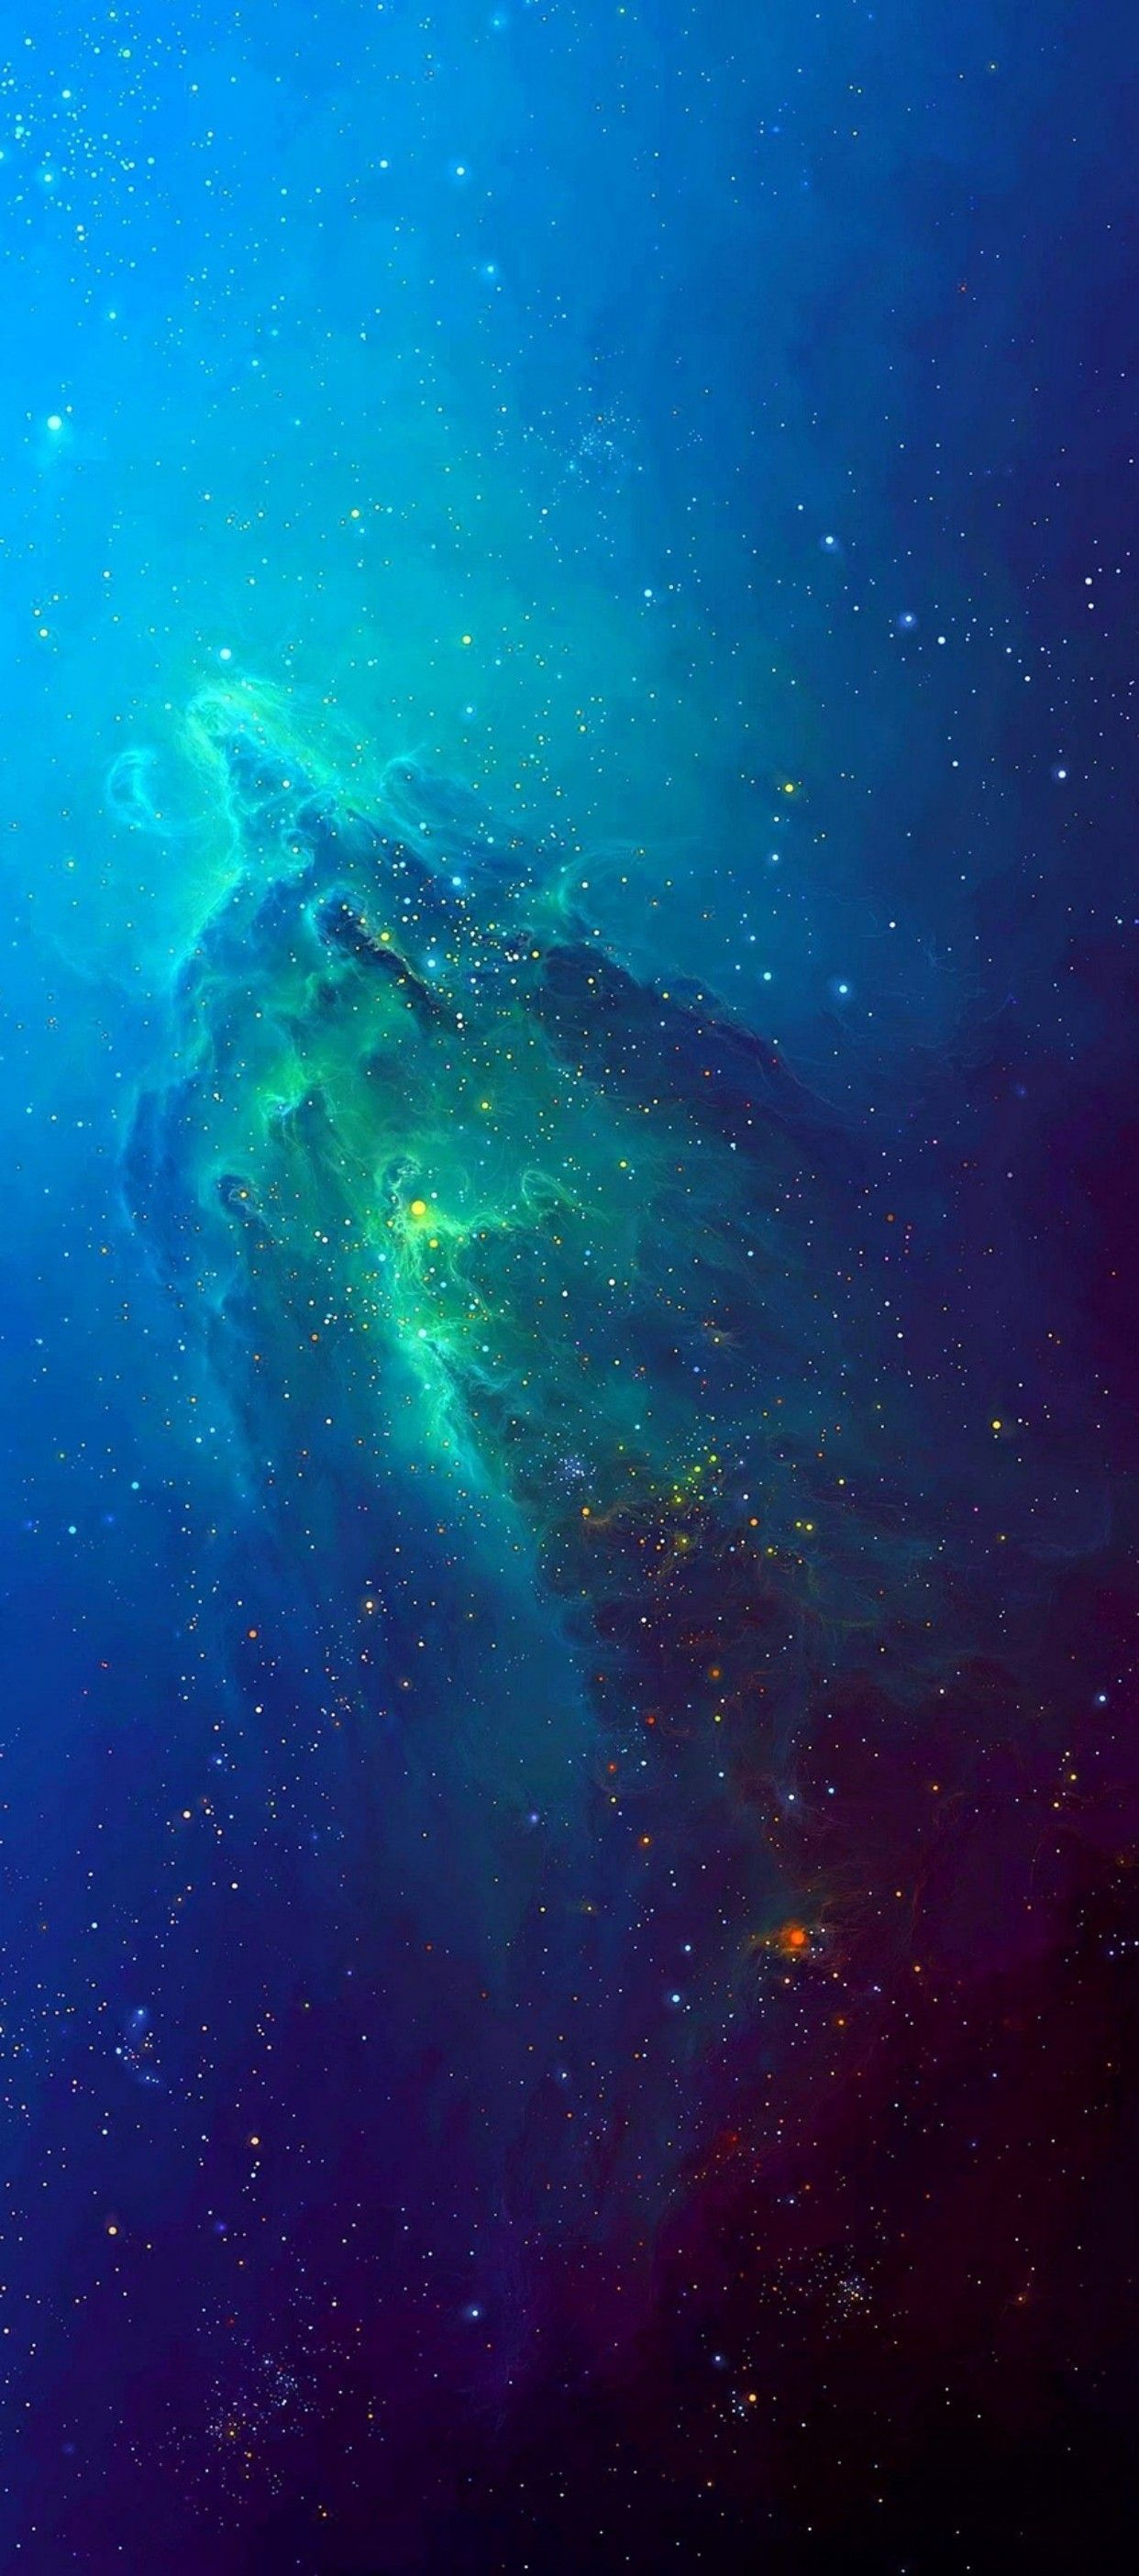 Ios 11 Iphone X Stars Space Blue Aqua Abstract Apple Wallpaper Iphone 8 Clean Beauty C Space Iphone Wallpaper Blue Wallpaper Iphone Wallpaper Space